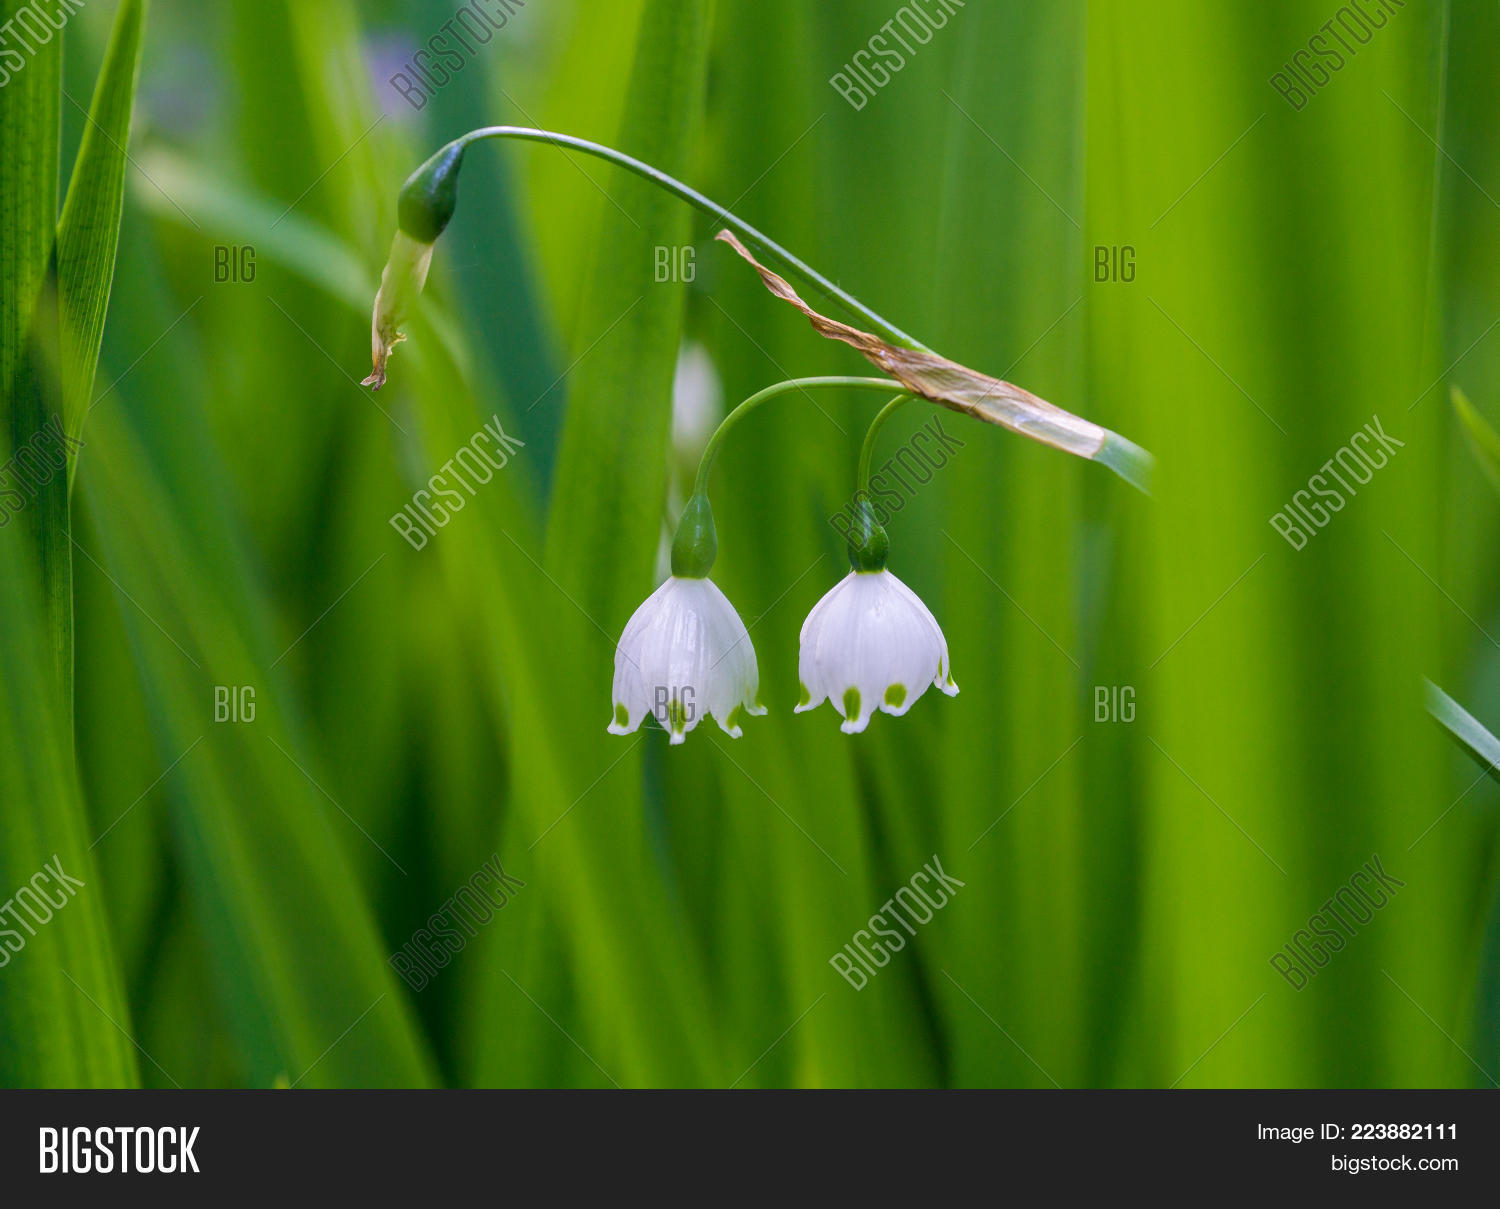 Lily Valley Image Photo Free Trial Bigstock